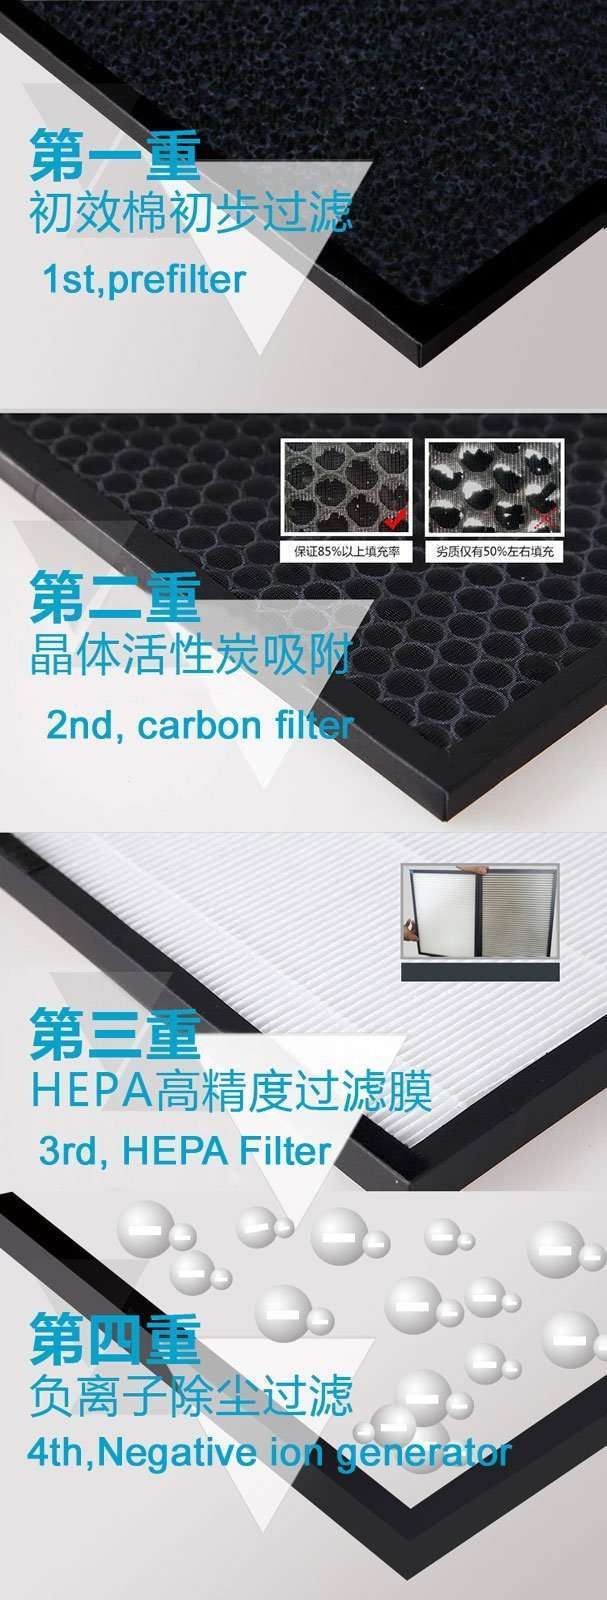 filters in fresh air system